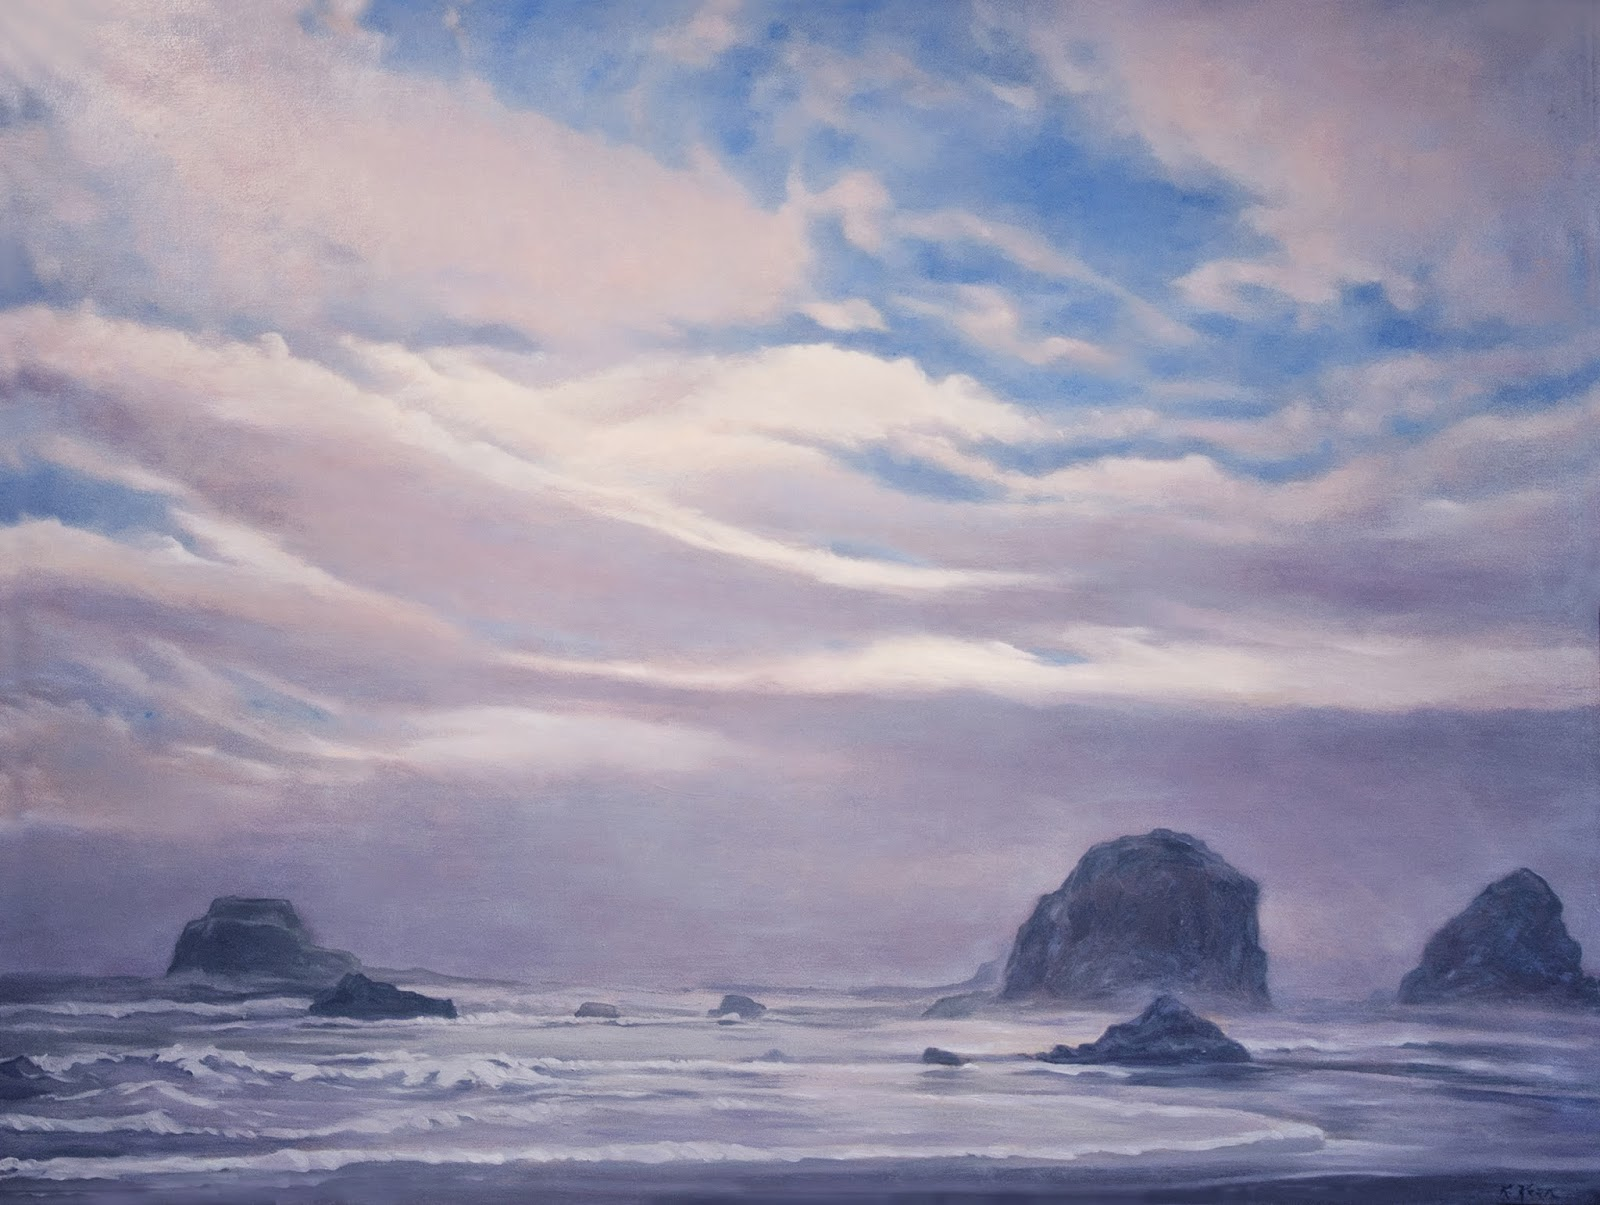 Fog Lifting Katherine Kean oil on linen 30 x 40 inches, healing art, tranquil art